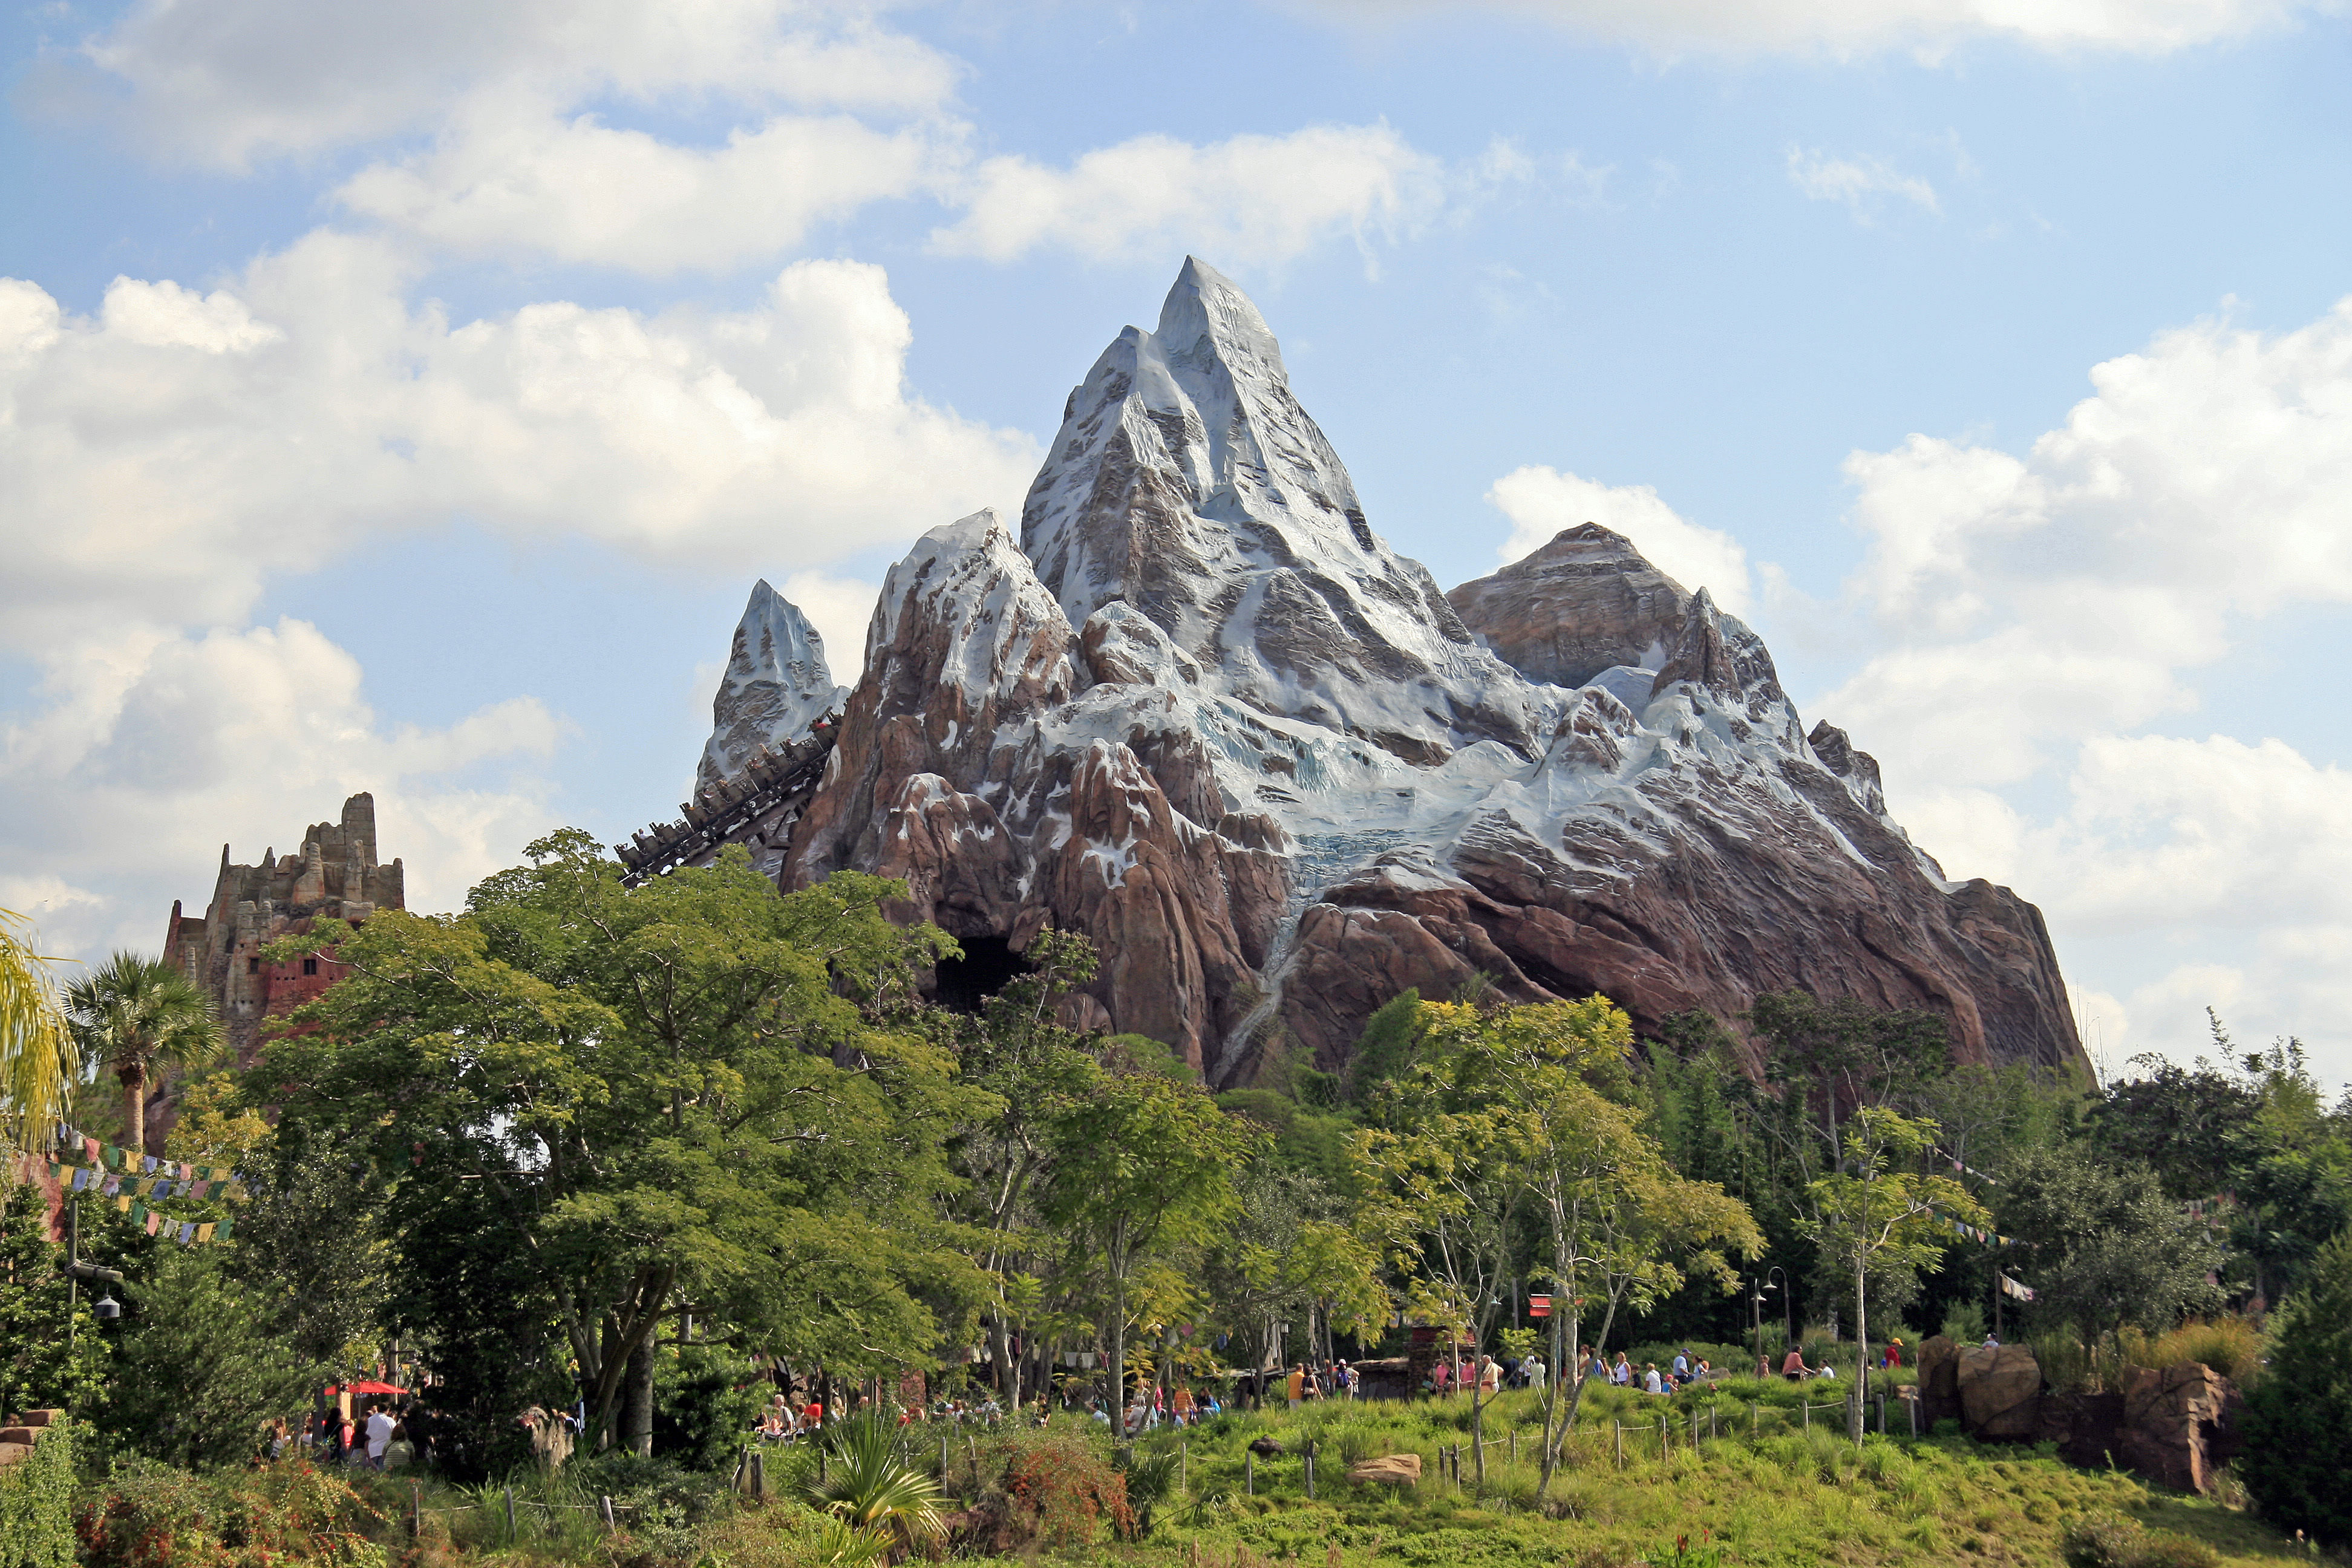 Expedition Everest My Verson | WDWMAGIC - Unofficial Walt ...